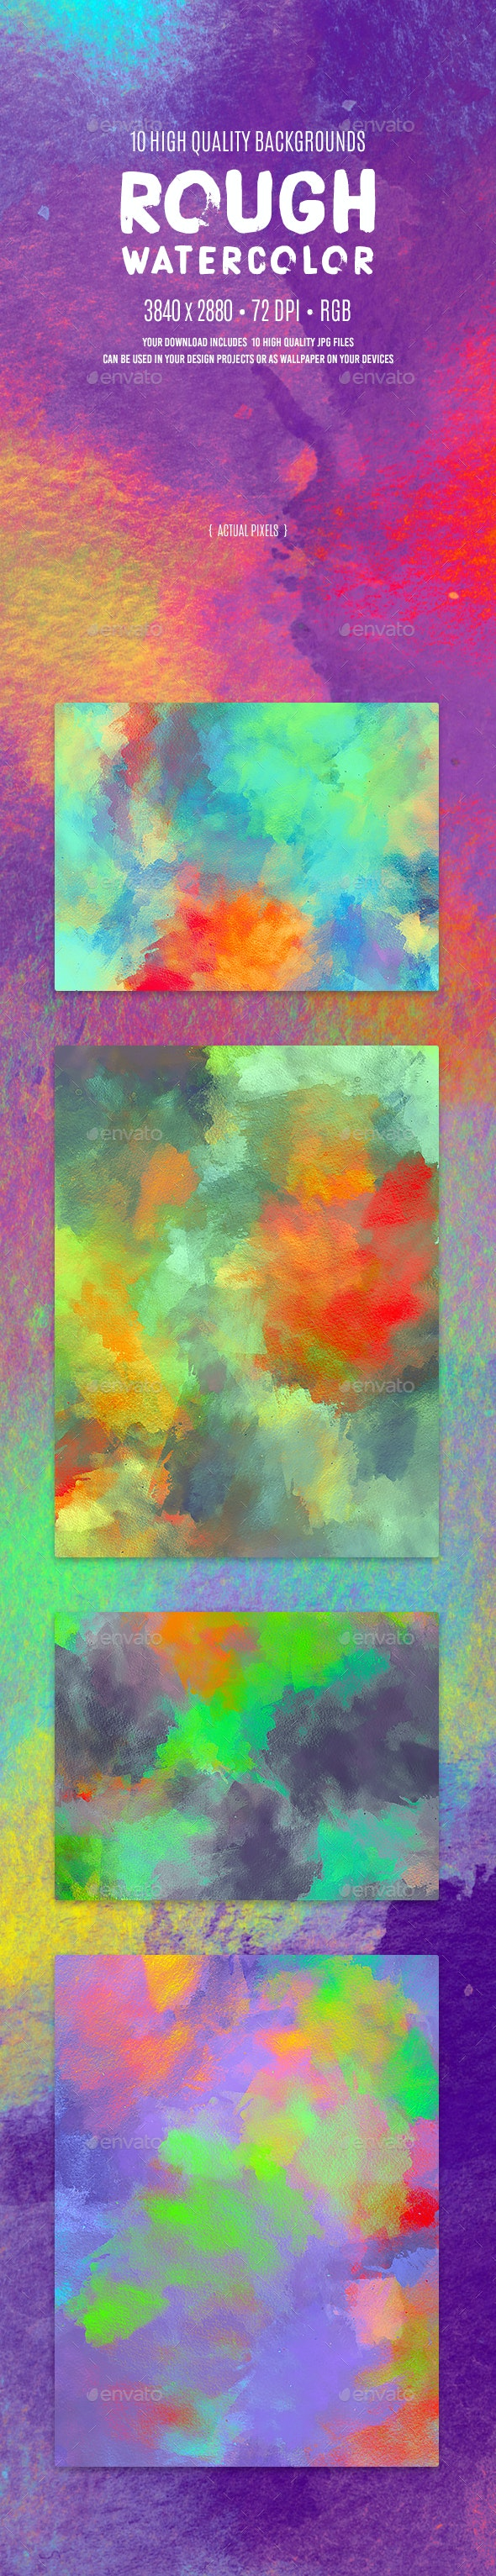 Rough Watercolor Backgrounds - Abstract Backgrounds